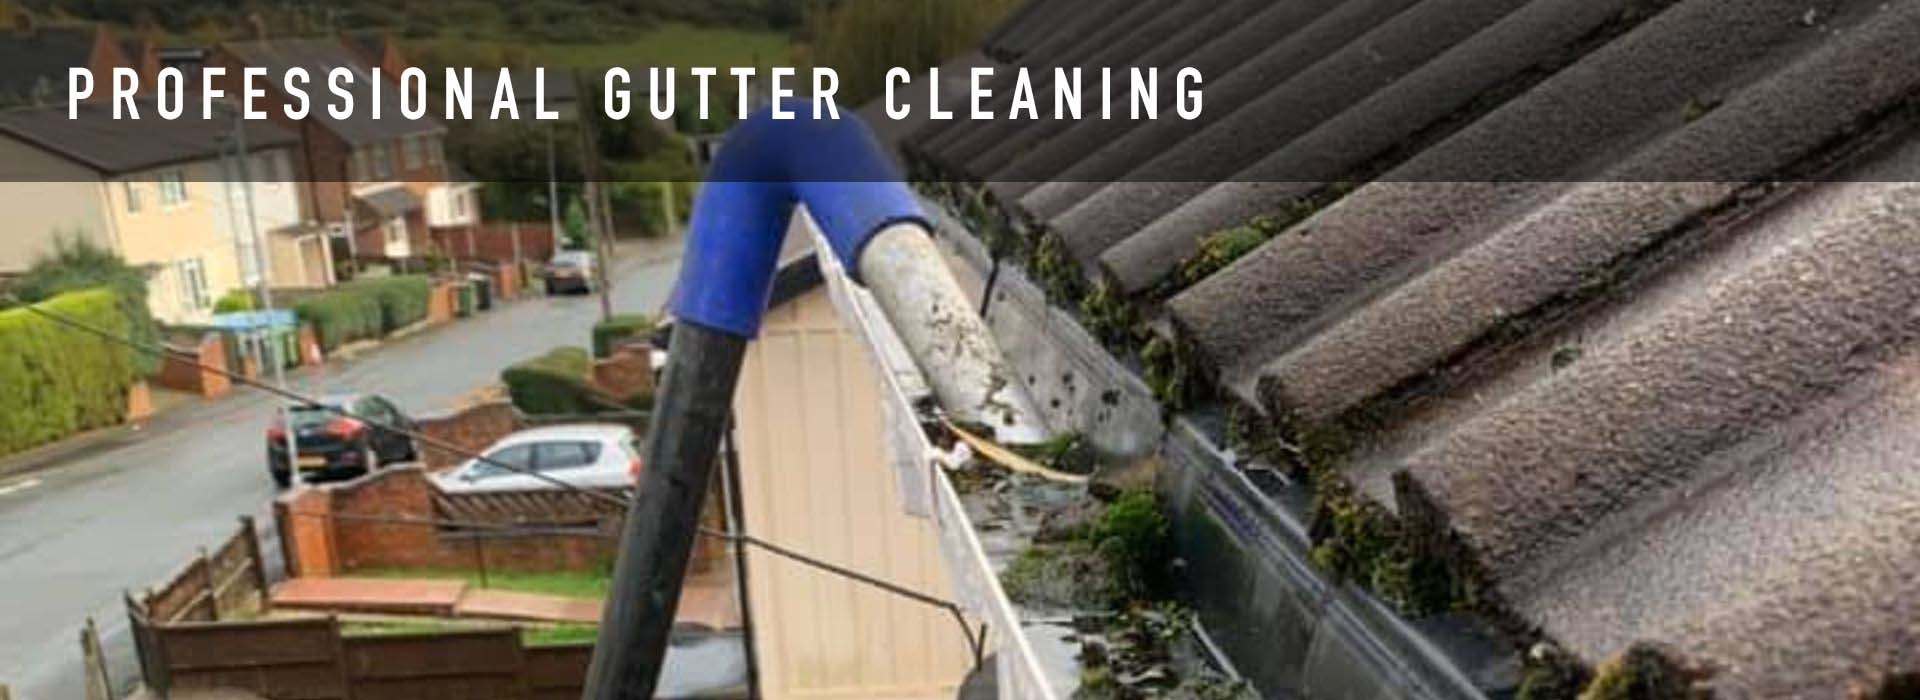 gutter cleaning worcester